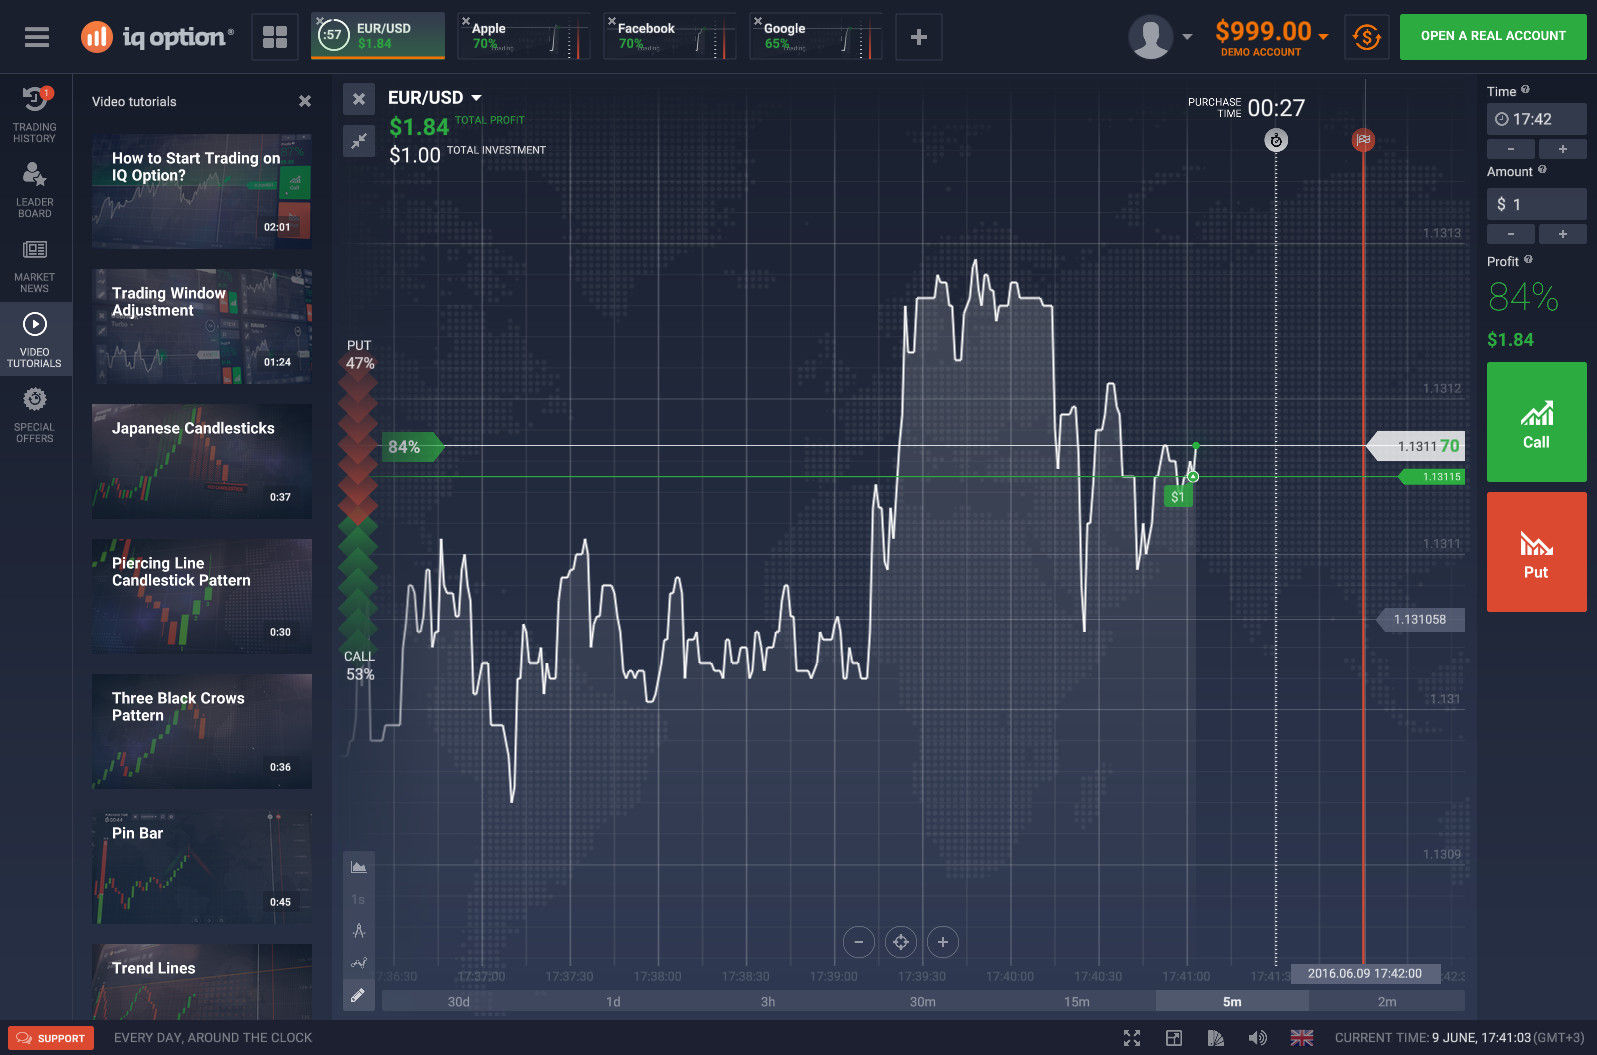 iq option opinioni usdrub